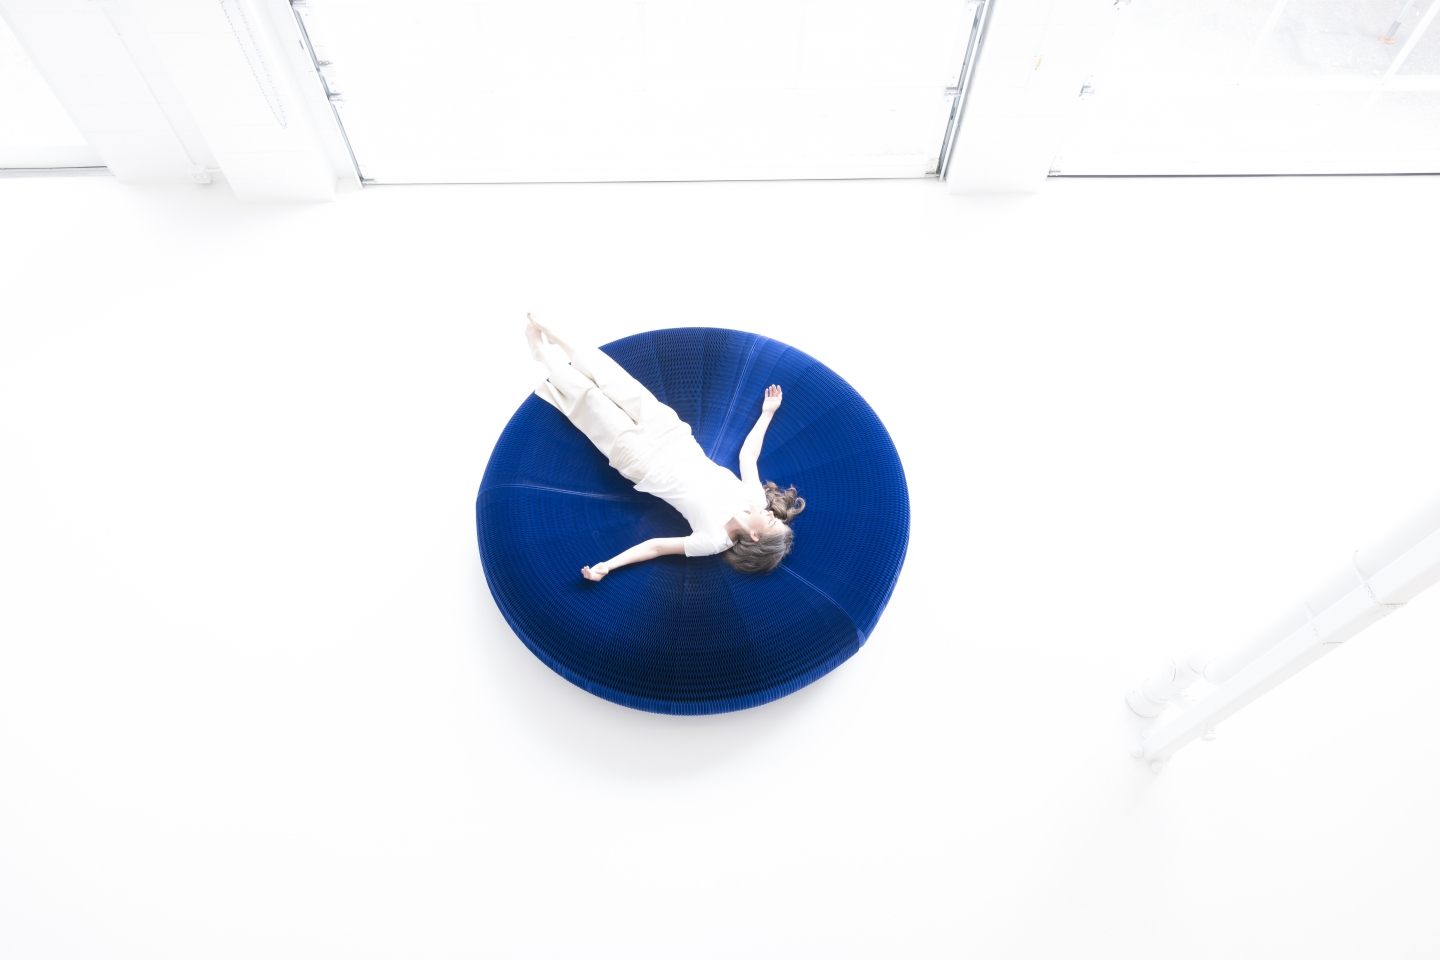 Floating away on an indigo softseating lounger.